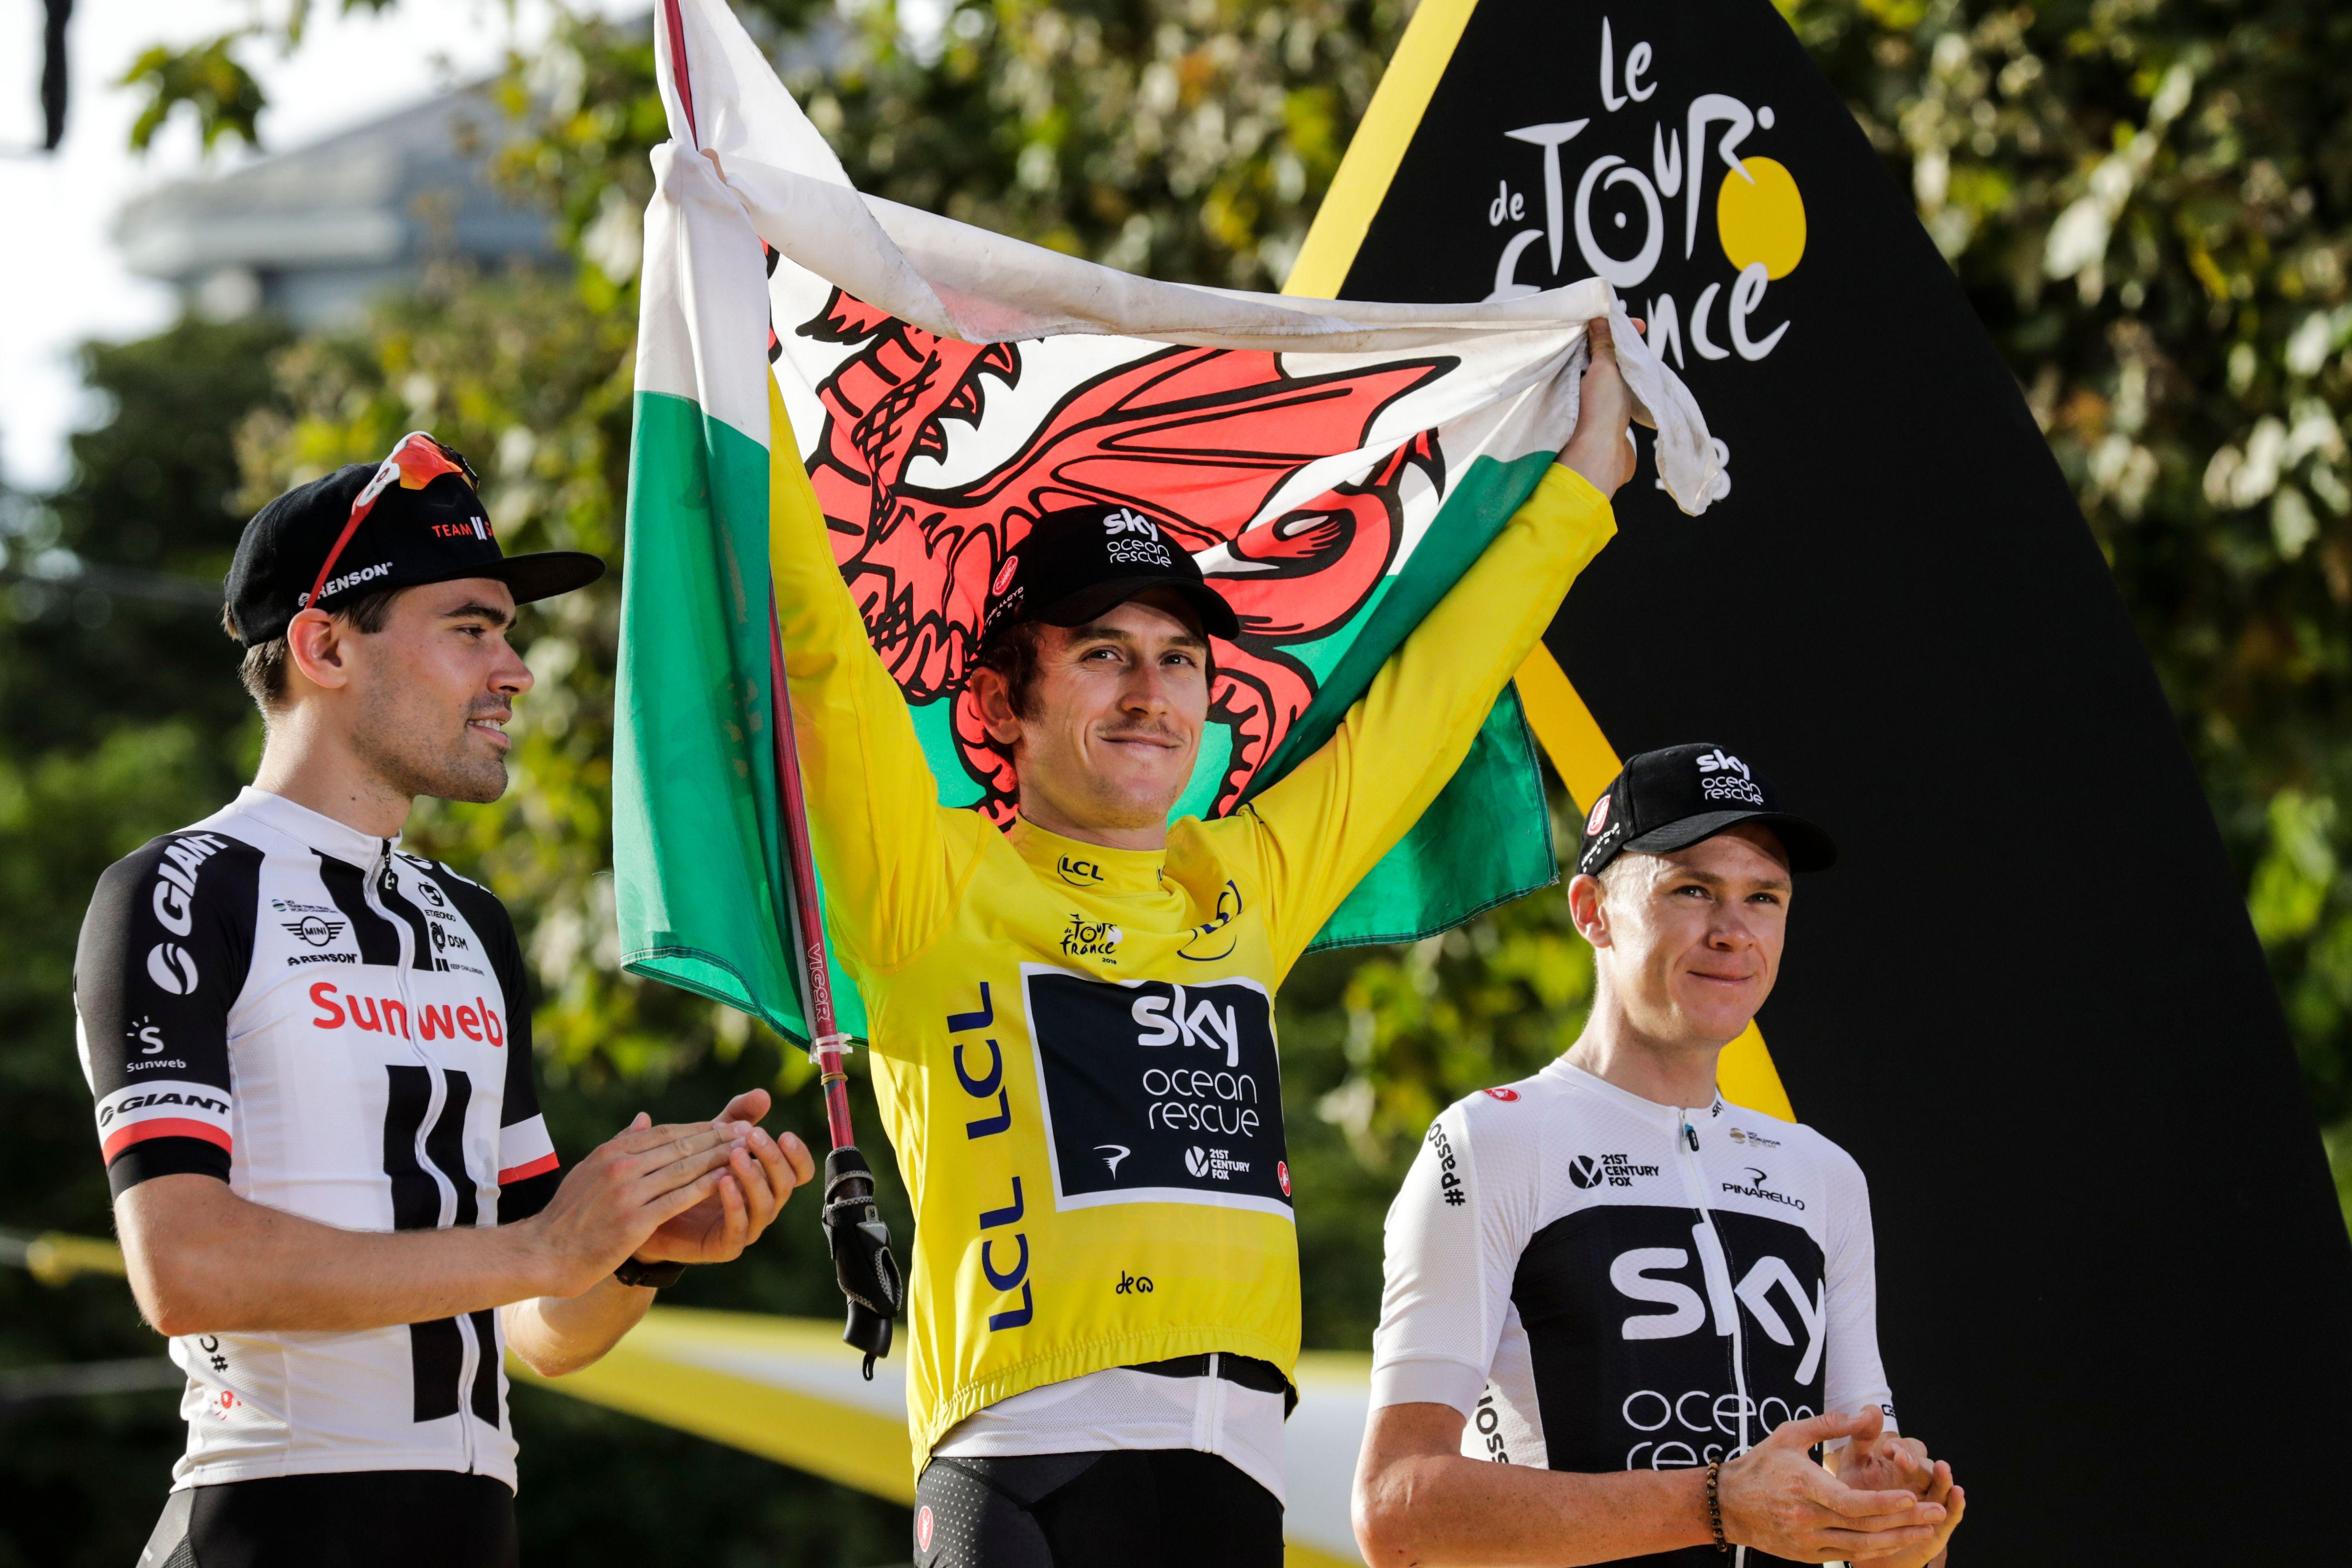 Geraint Thomas celebrated victory at the Tour de France in July